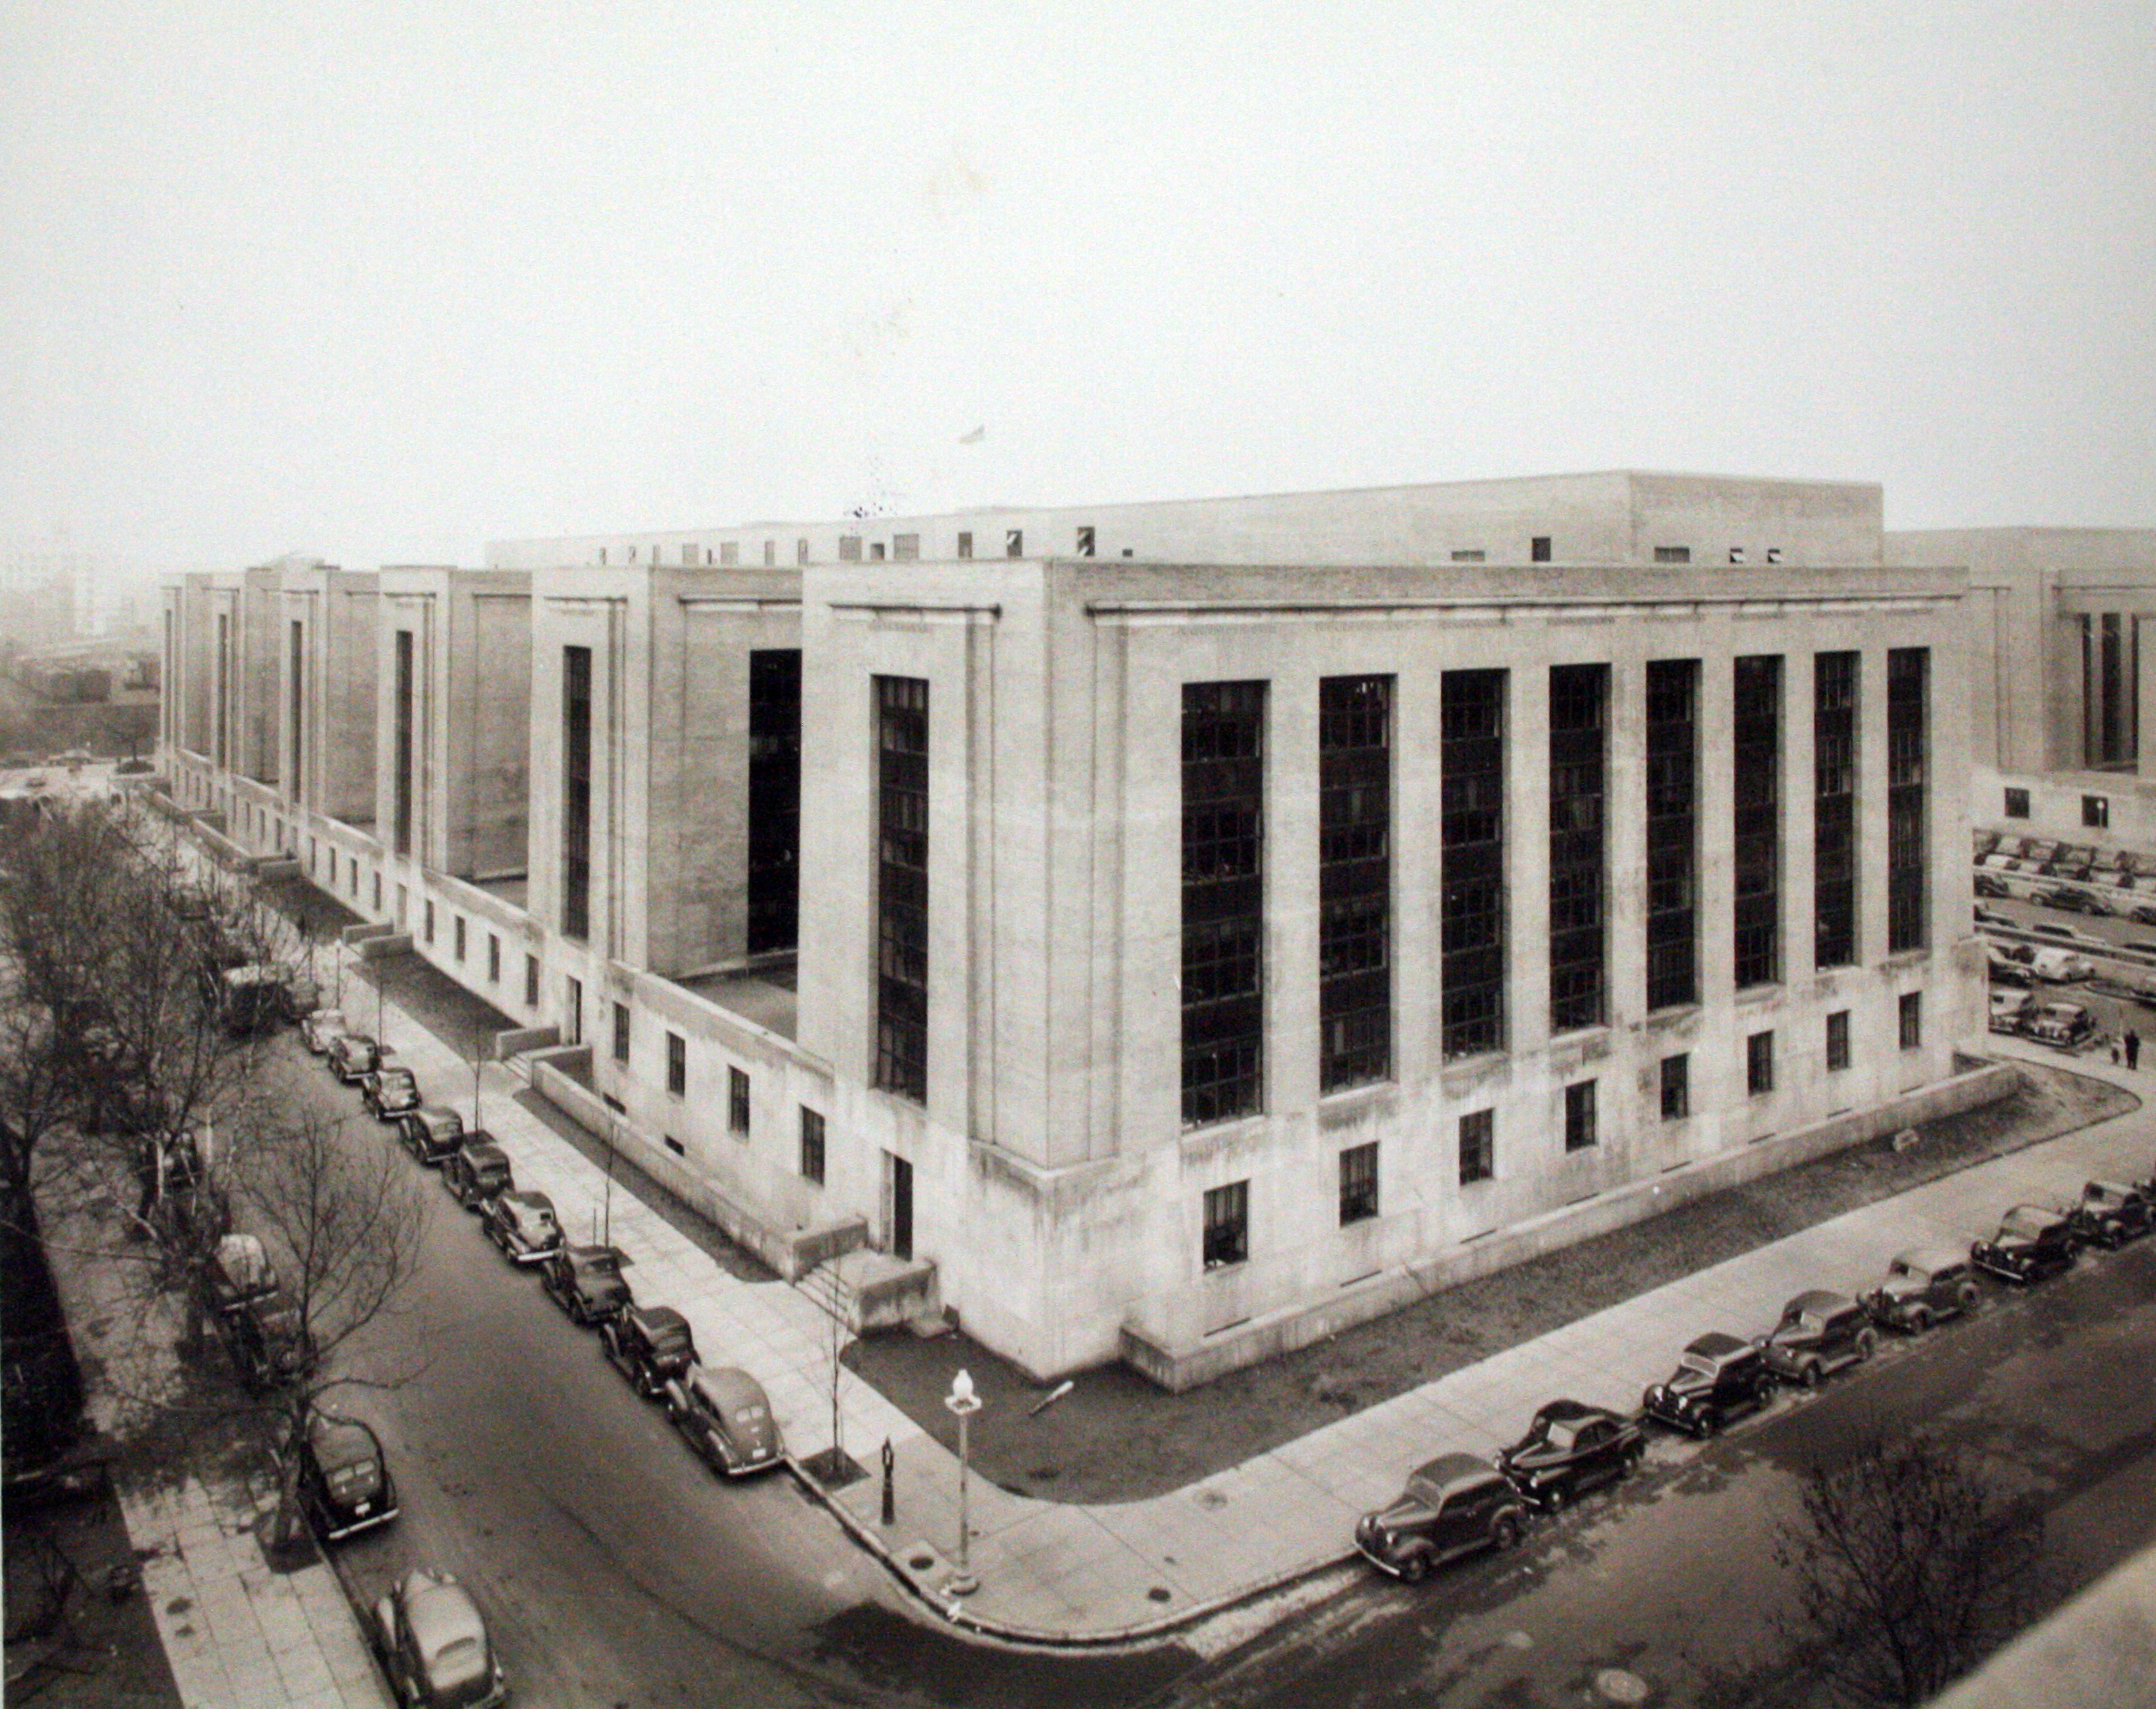 Completed construction of the Mary E. Switzer building, c. 1940.